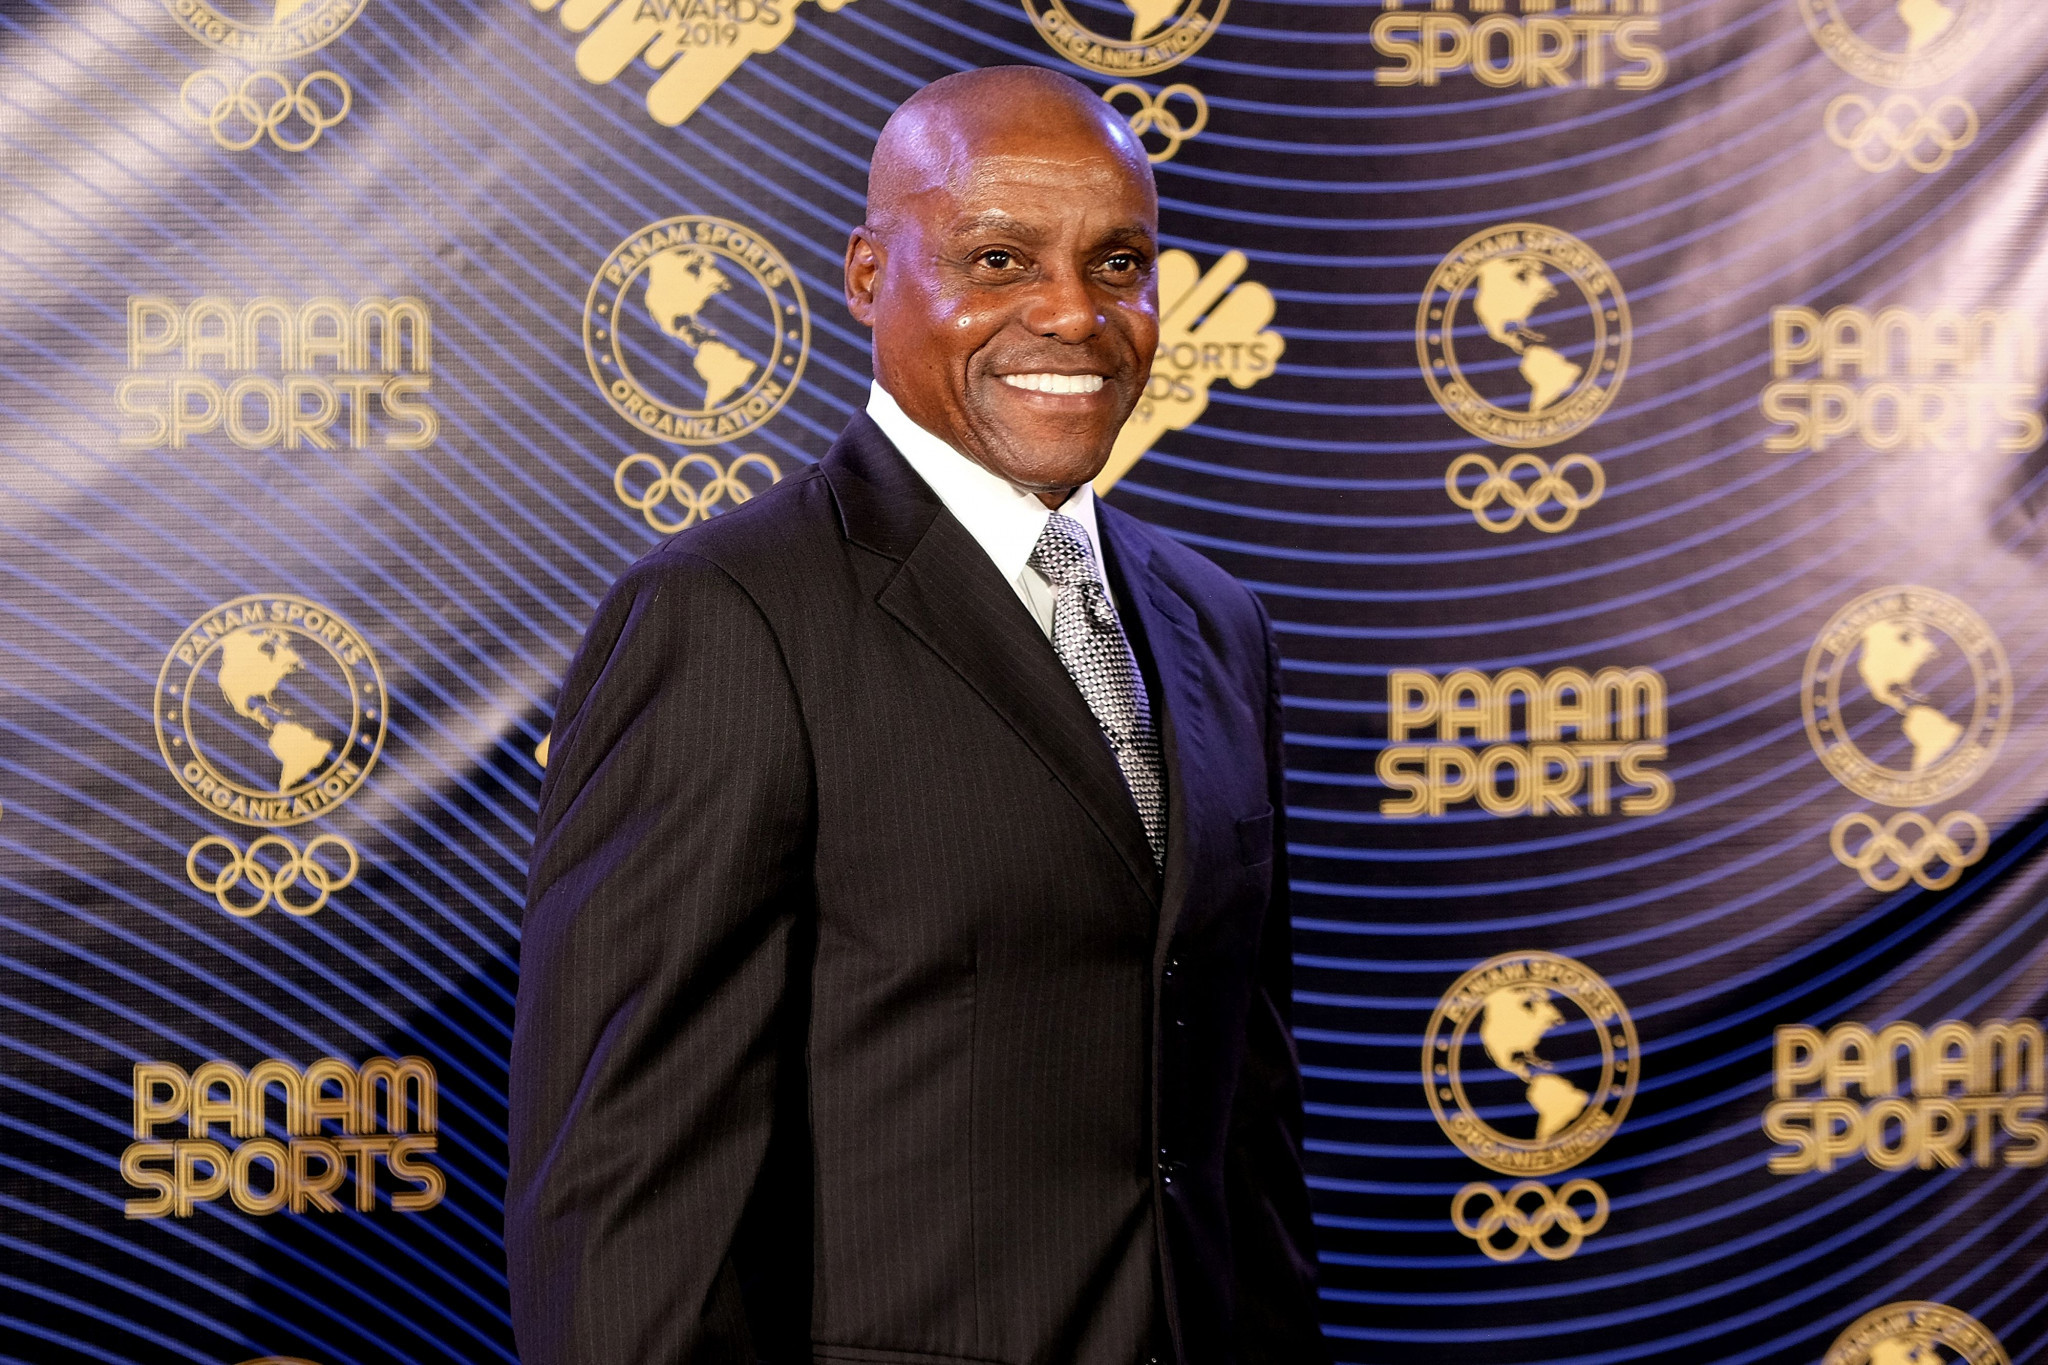 American athletics great Carl Lewis received the Panam Sports legend award ©Getty Images